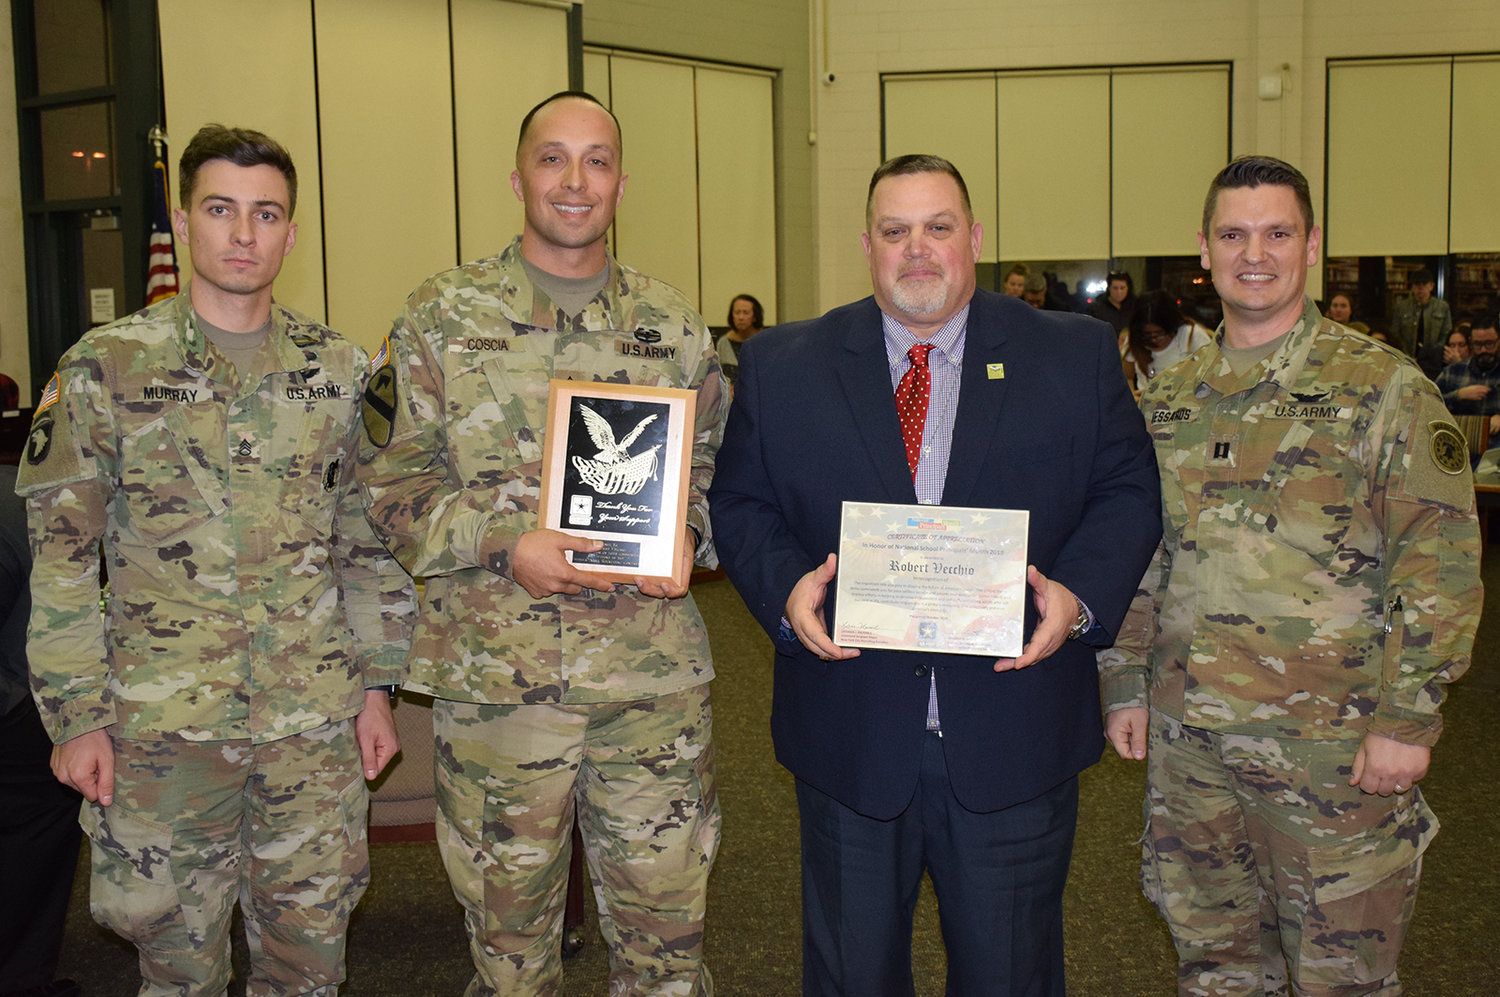 Pictured with WFSD BOE President Robert Vecchio (second from right) are (l-r) Staff Sergeant Timothy Murray, Sergeant First Class Joseph A. Coscia and Captain Christopher Messaros.